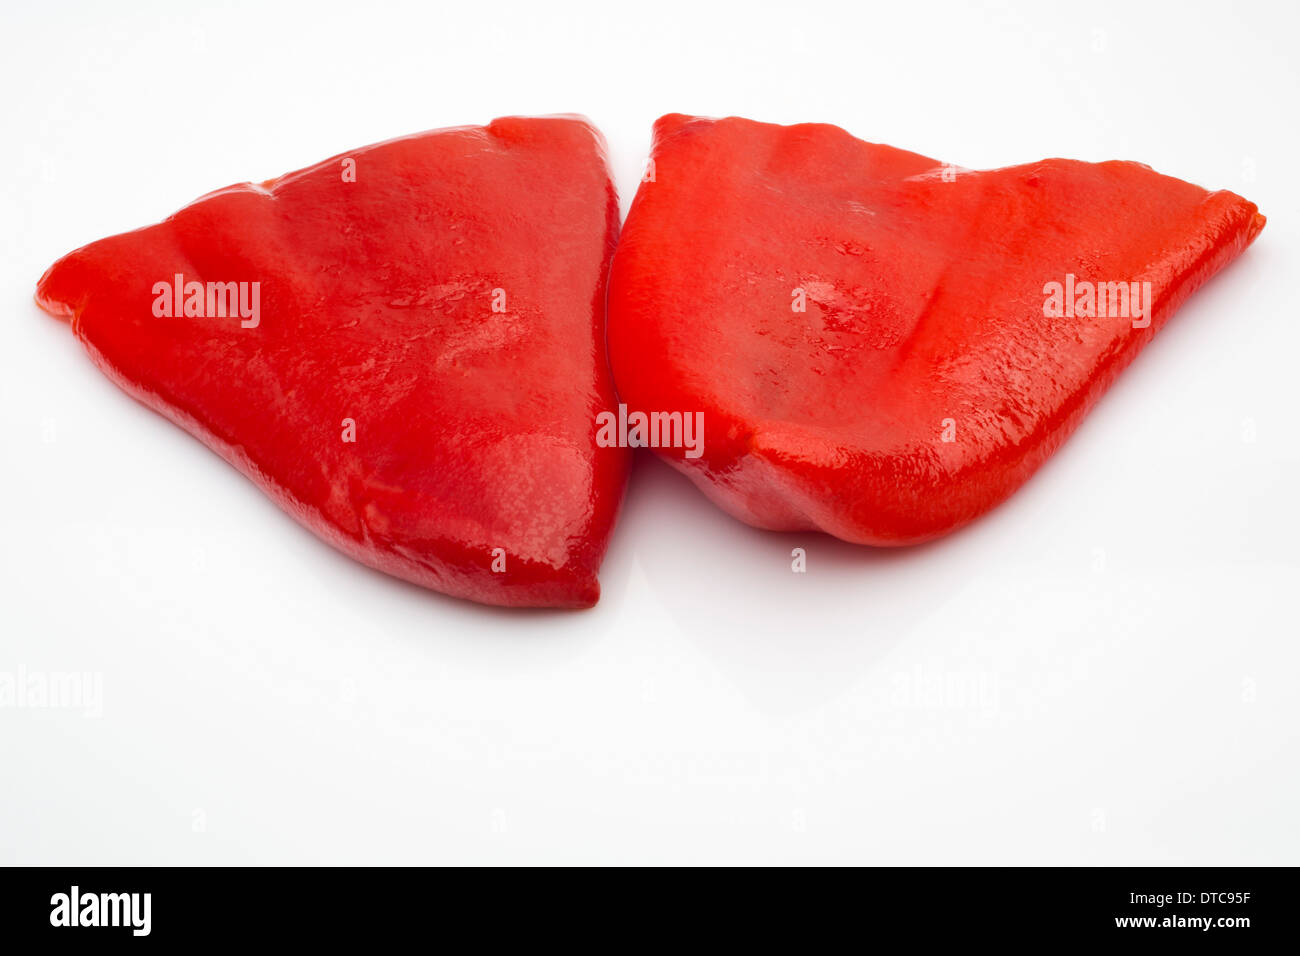 Roasted red peppers preserved food pimientos rojos asados en conserva - Stock Image